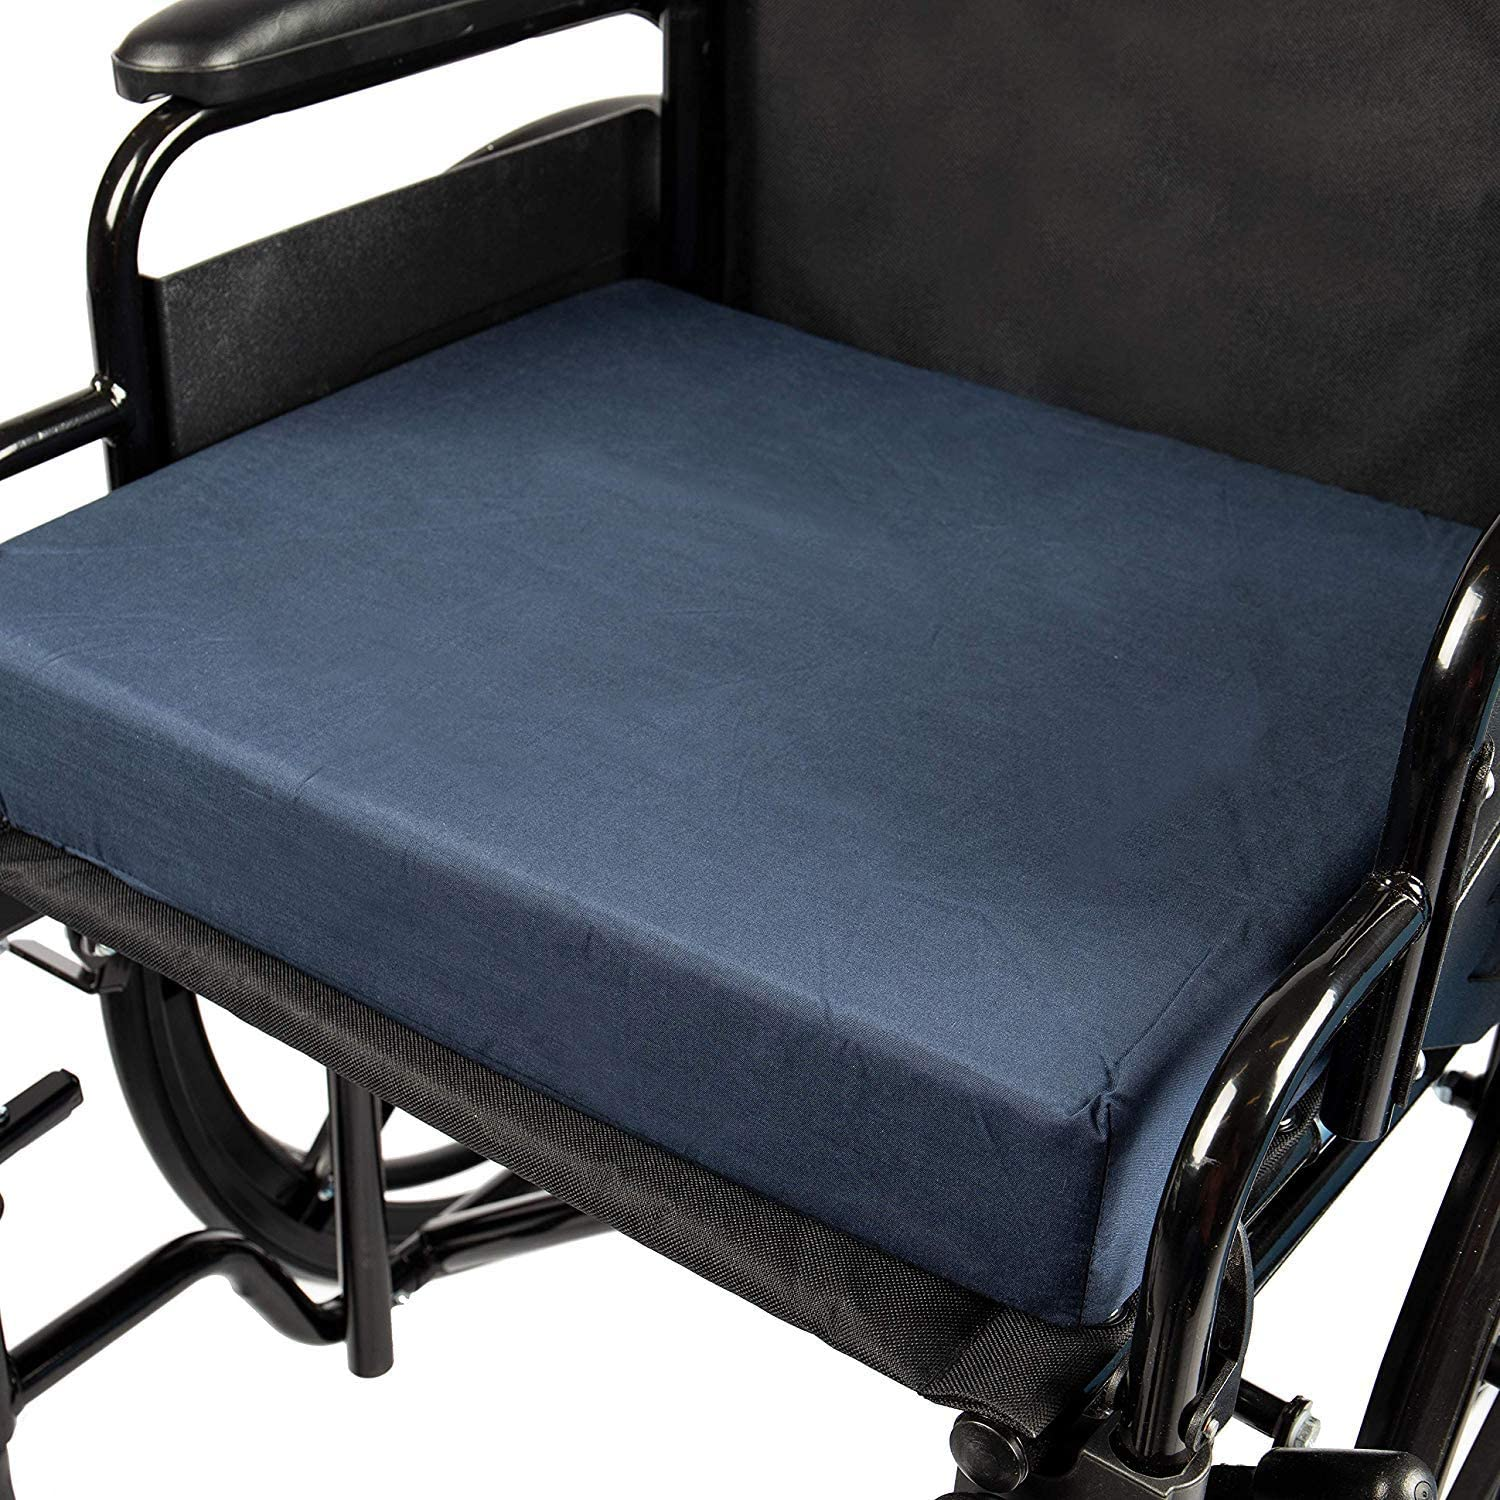 DMI Seat Cushion for Wheelchairs, Mobility Scooters, Office and Kitchen Chairs or Car Seats to Add Support and Comfort while Reducing Pressure and Stress on Back, 3 Inch thick, 16 x 18, Navy Blue: Health & Personal Care